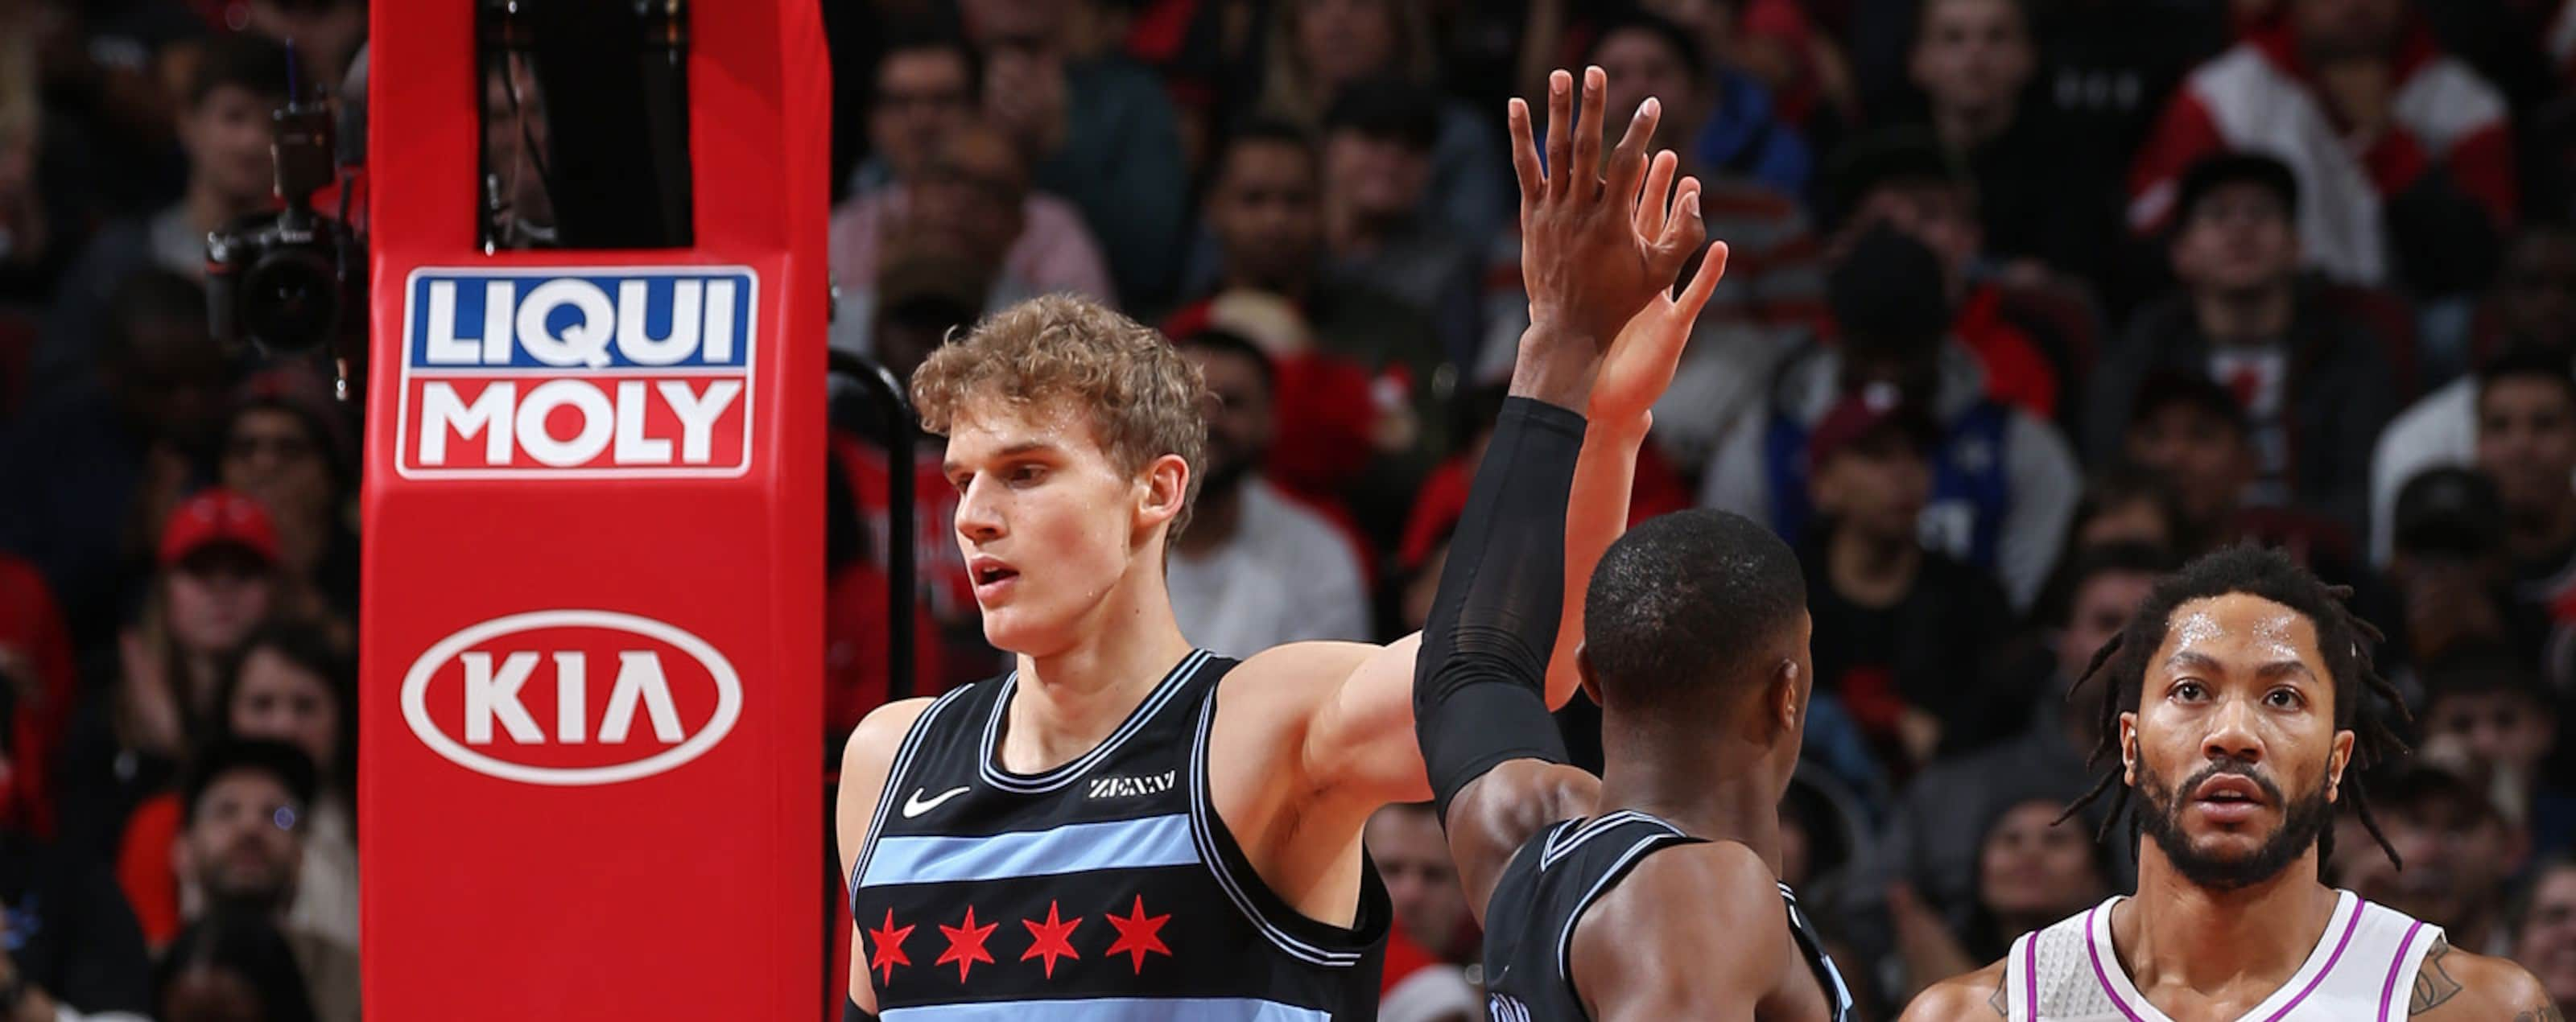 Lauri Markkanen #24 high fives teammate Kris Dunn #32 of the Chicago Bulls during the game against the Minnesota Timberwolves on December 26, 2018 at the United Center in Chicago, Illinois.